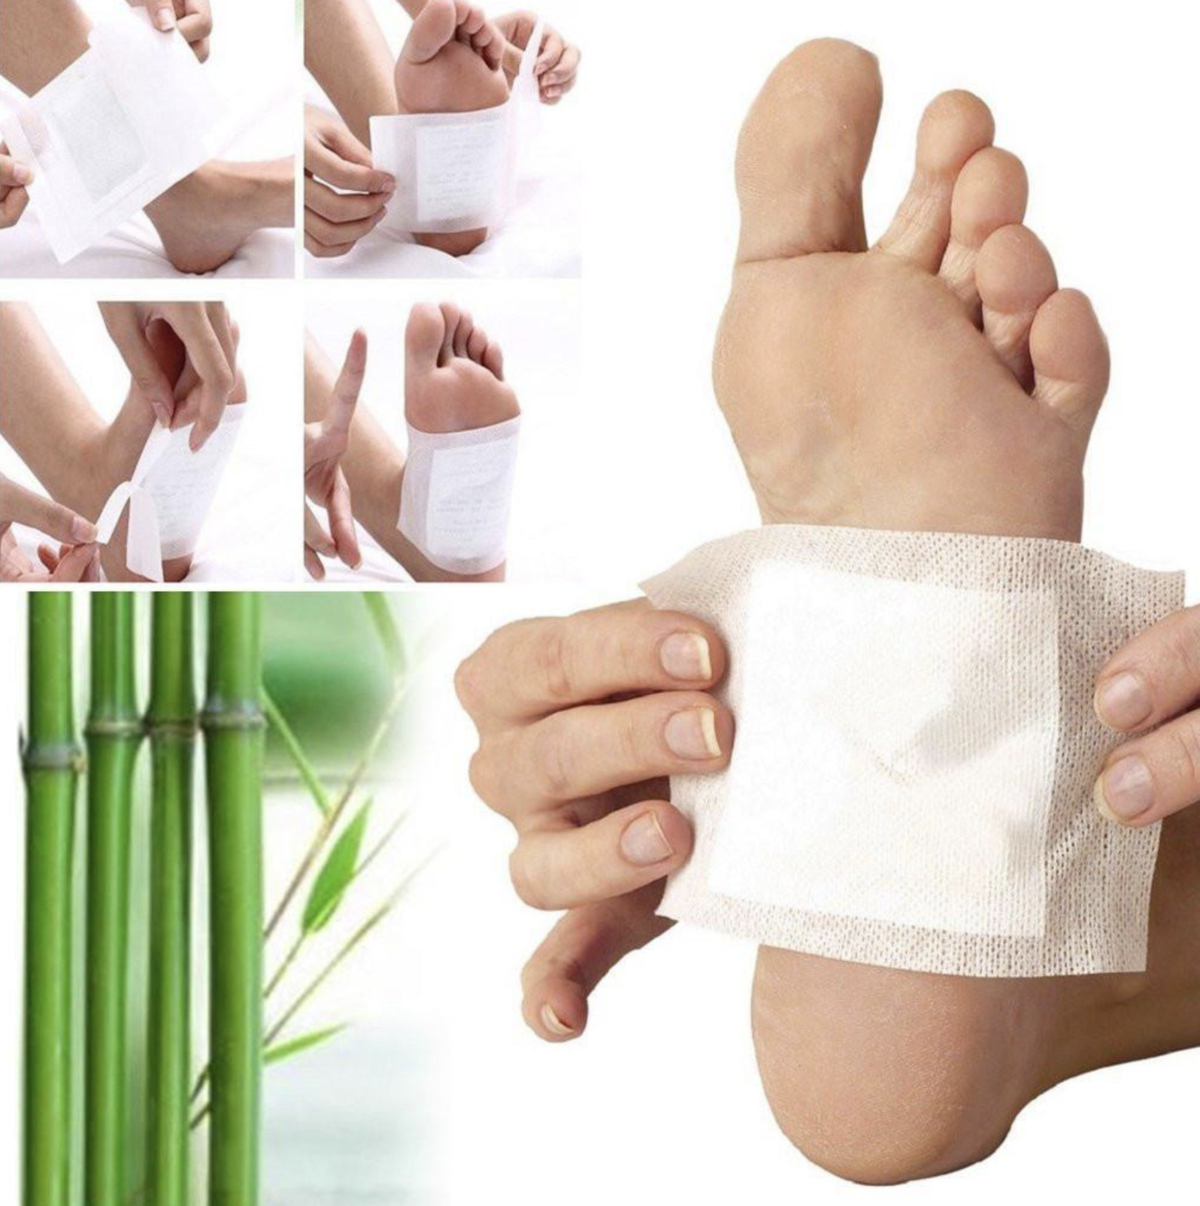 Foot Detox Pads | Foot detox pads, Detox pad, Foot detox patches